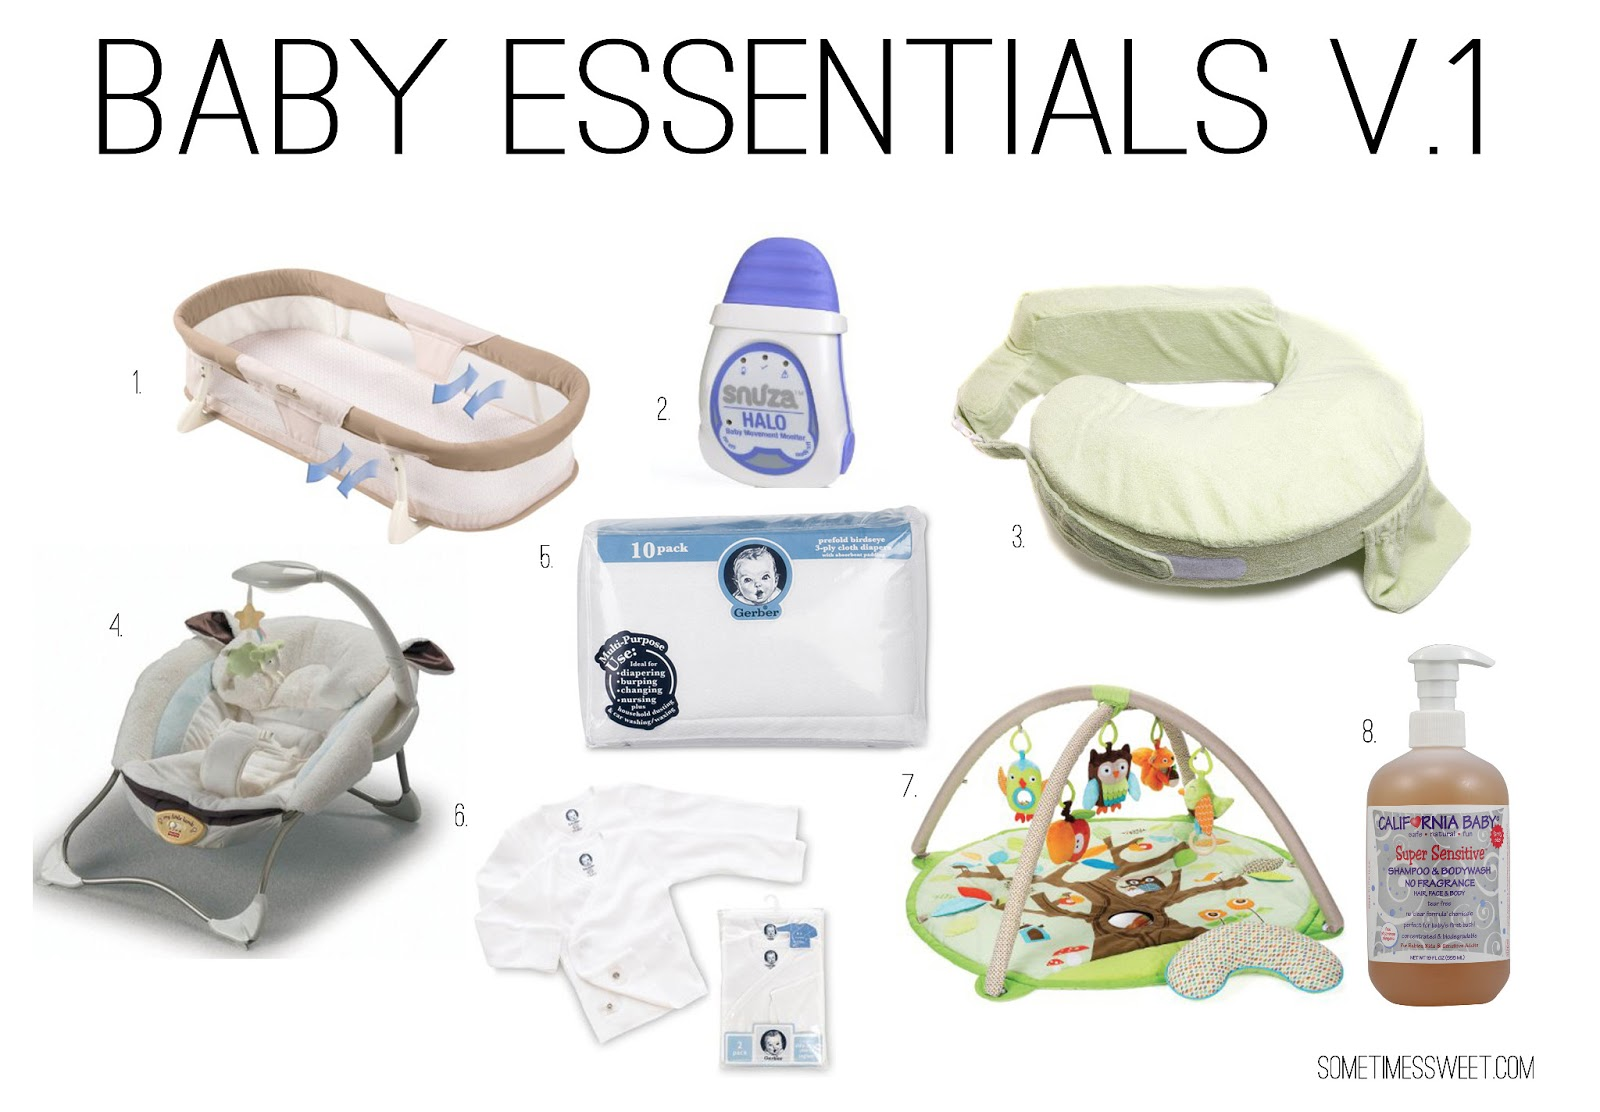 The Baby Essentials Checklist is a frugal guide for thrifty parents just interested in the baby basics.